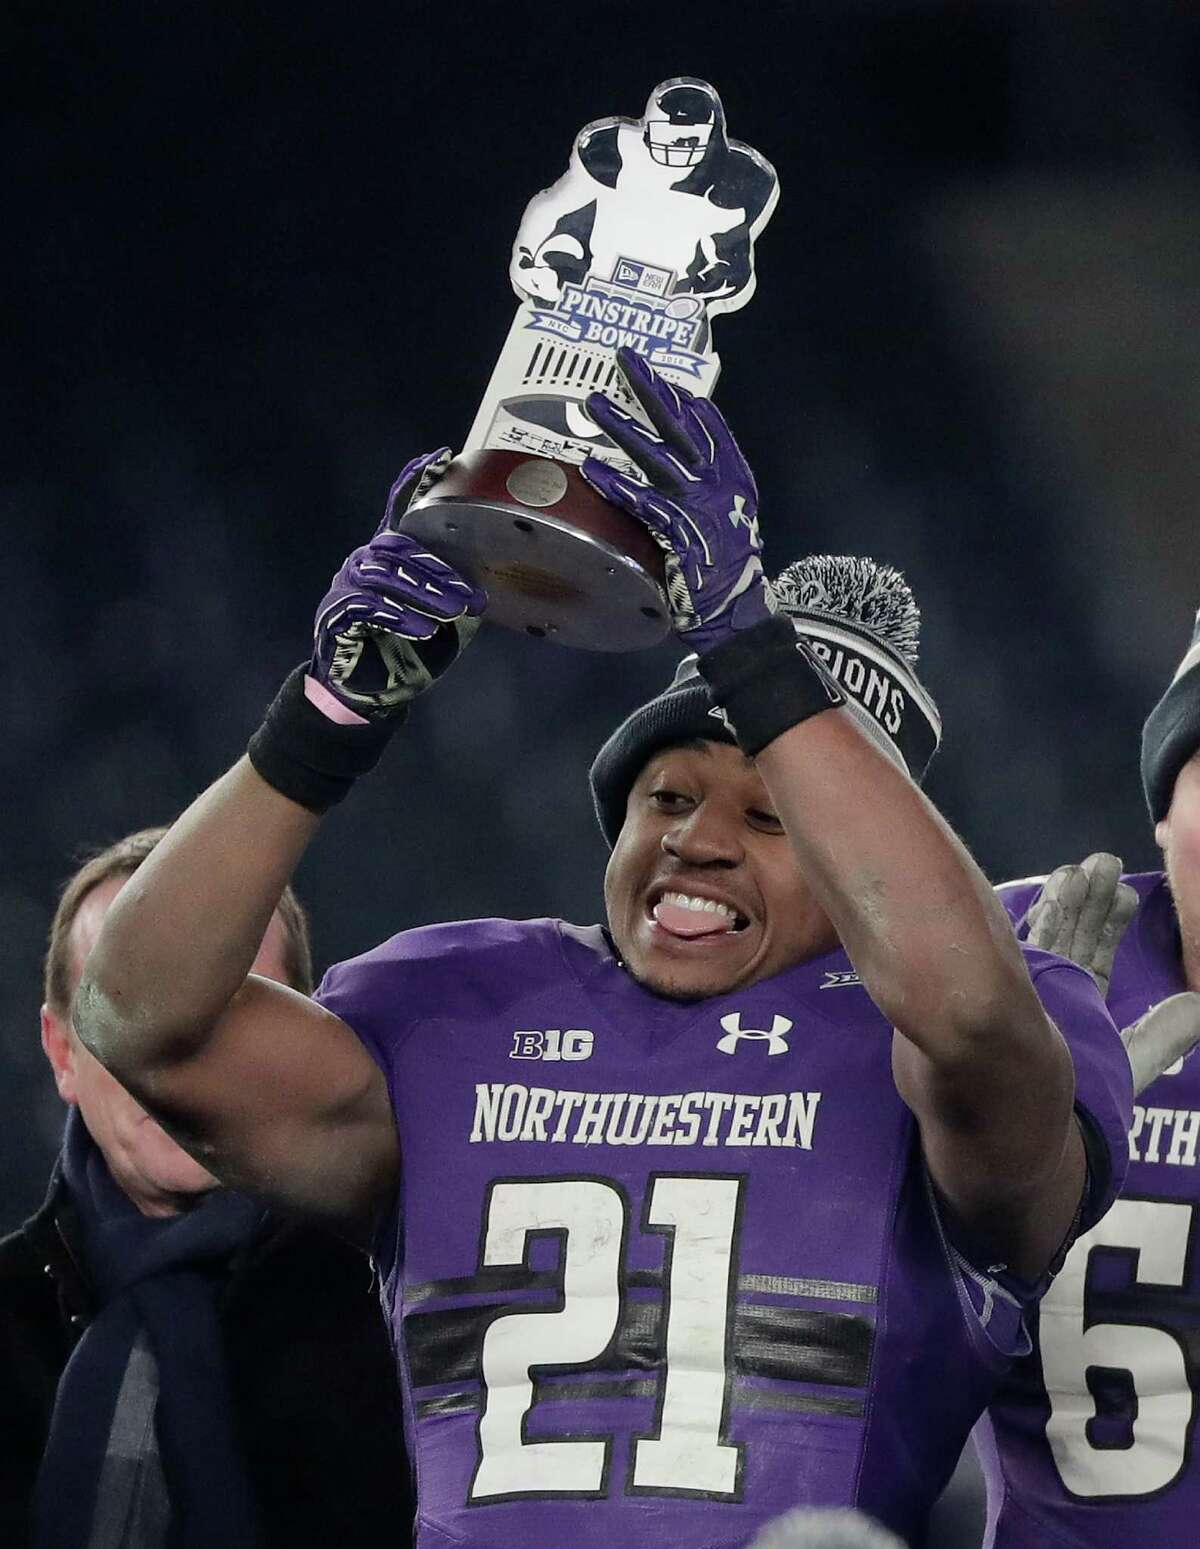 Big Ten (3-7) Biggest win: Northwestern's 31-24 win over Pittsburgh in the Pinstripe Bowl was its second bowl win since 1948. Biggest dud: There was not going to be any shame for Ohio State if it lost a competitive game to Clemson in the Fiesta Bowl. The Buckeyes, however, never had a chance in a 31-0 loss. It was the first time a team coached by Urban Meyer got shutout.